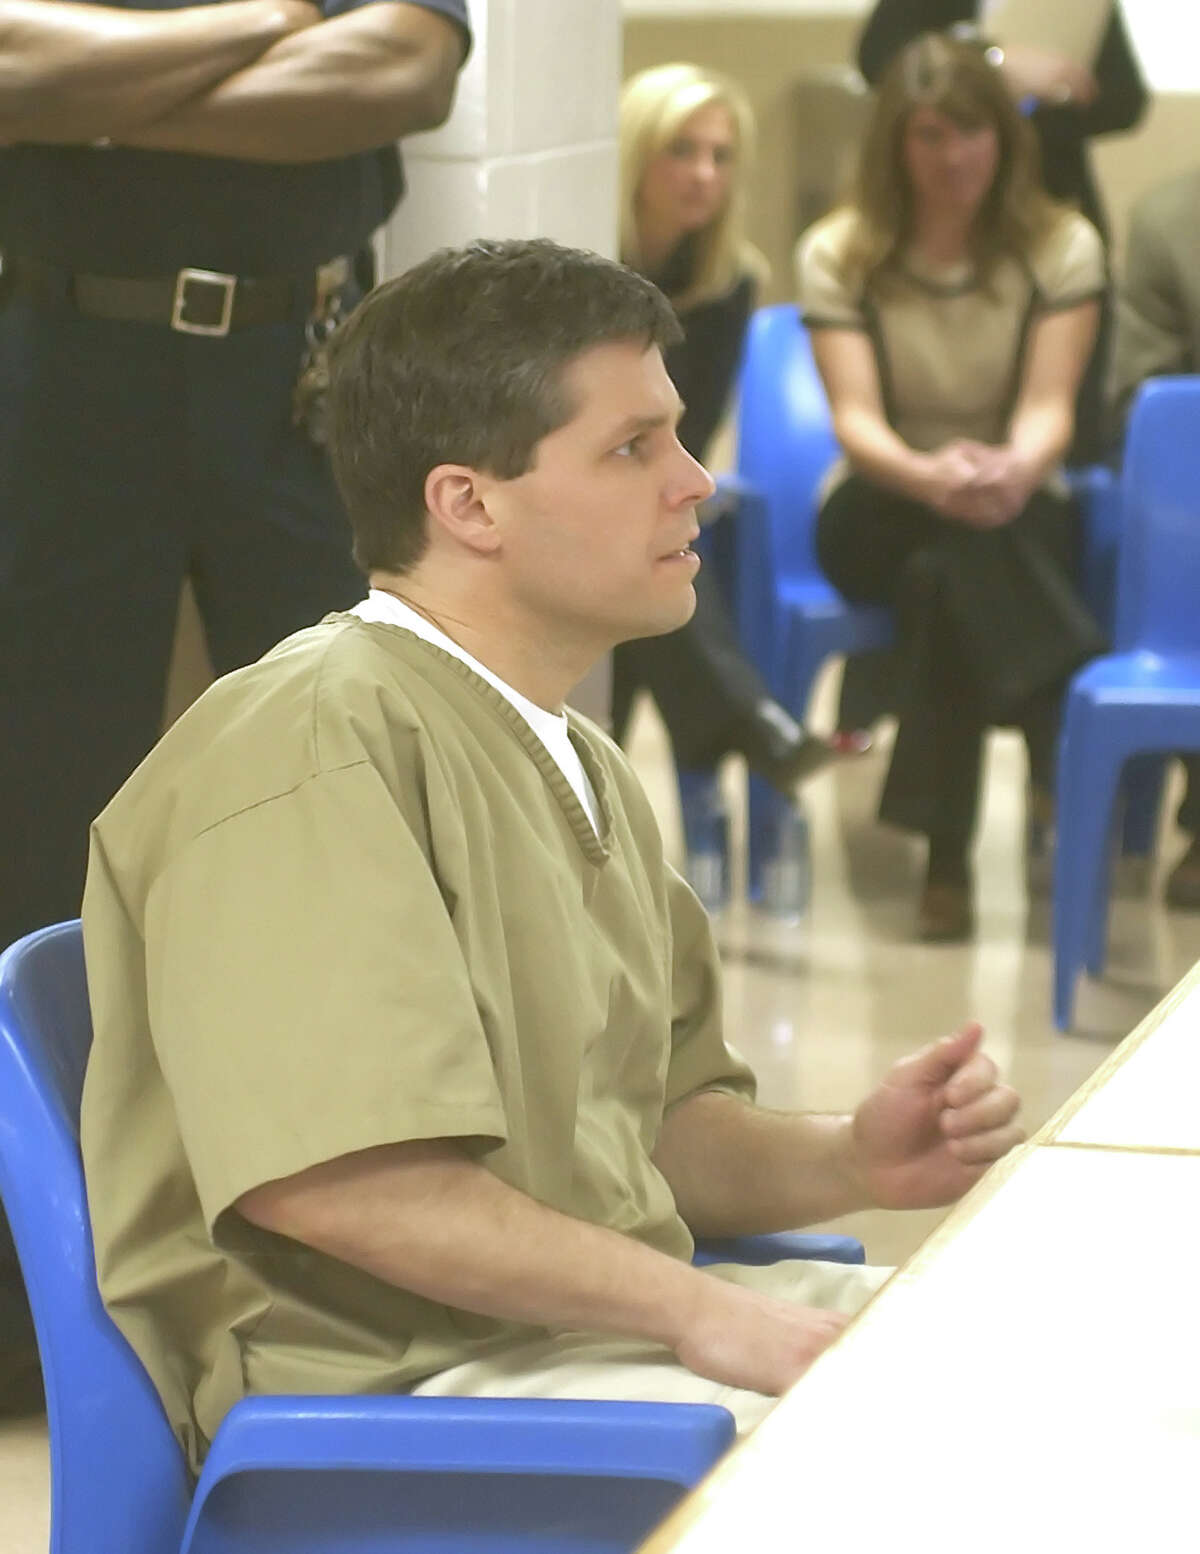 Alex Kelly reacts after he was informed that his request for parole had been denied by the state parole board at a hearing in Suffield, Conn., Thursday, March 3, 2005, as Adrienne Bak, left background, and Hillary Buchanan, right background, listen. Kelly was convicted in 1997 of raping both Bak and Buchanan in 1986. (AP Photo/Bob Child, Pool)